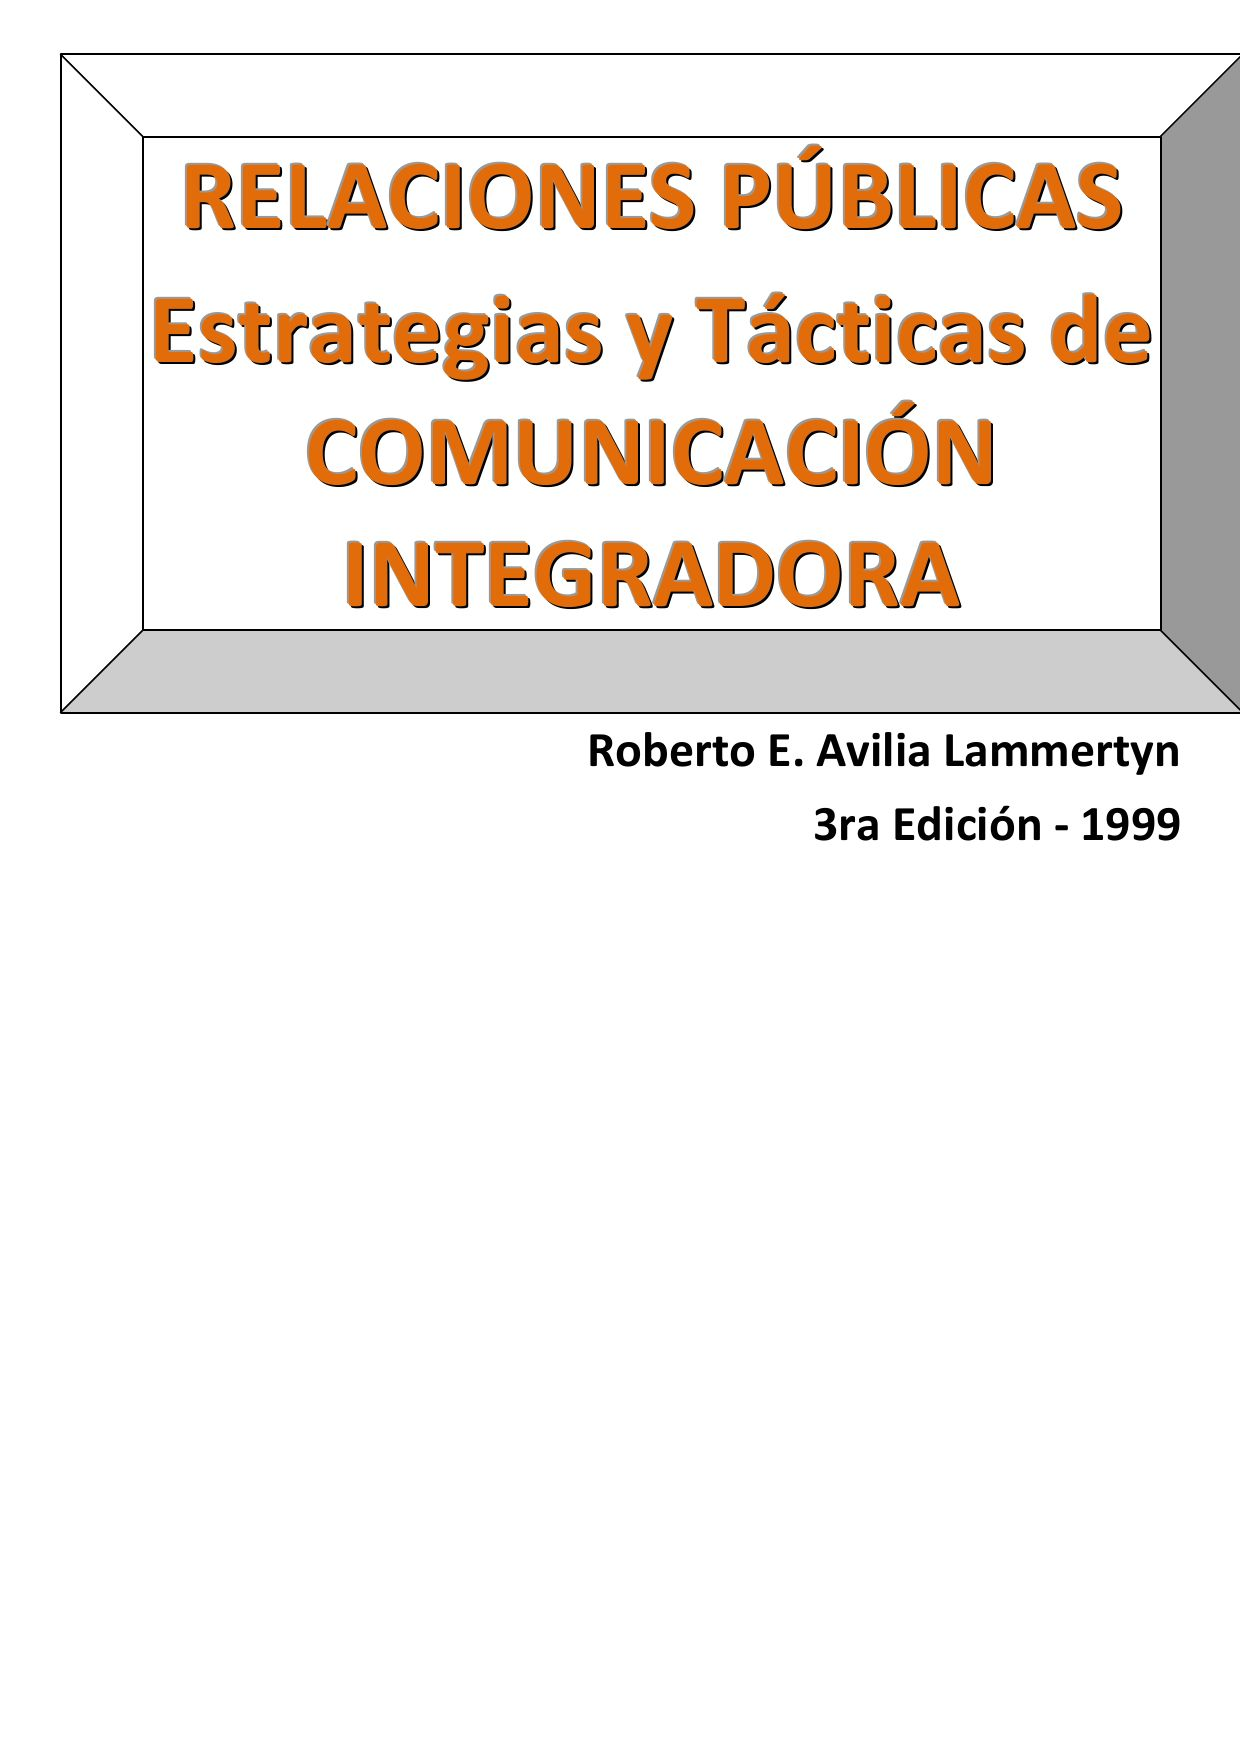 RRPP - Comunicacion Integradora by Roberto Avilia - issuu